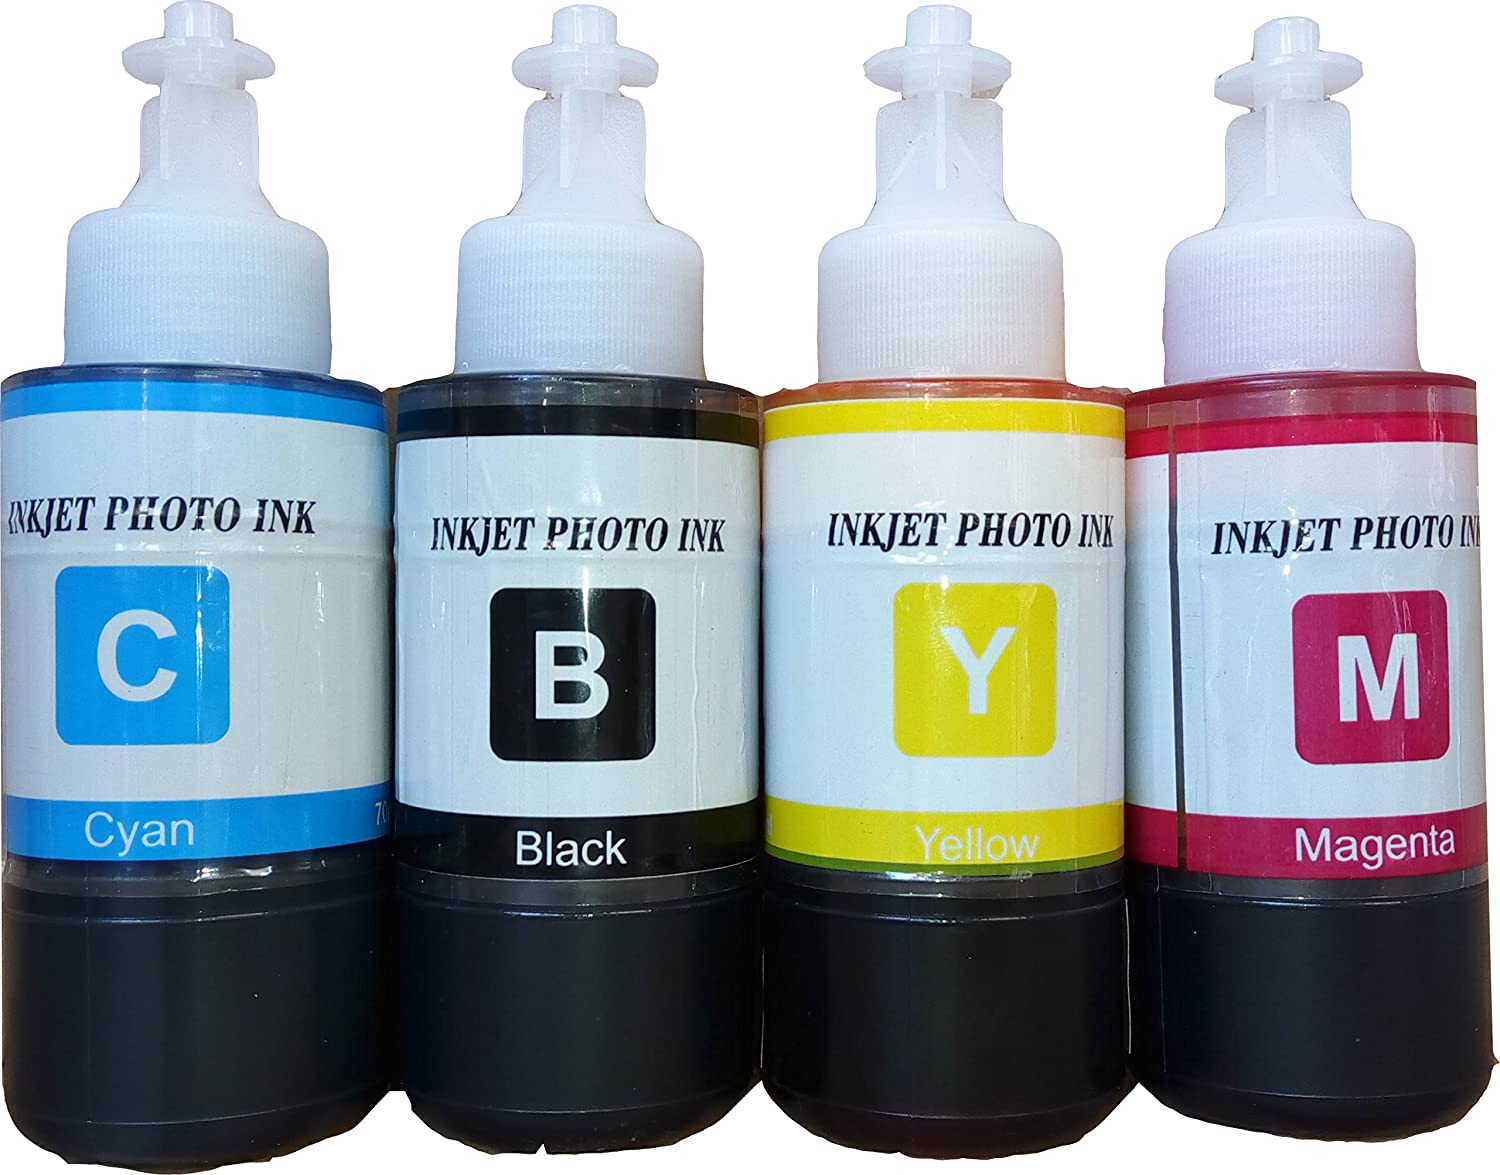 Flowjet Refill Ink Bottle For Epson Printer L100 L110 L130 L200 L210 Print Head L120 L220 L310 L360 L365 L380 L385 L455 L485 L565 New Original L355 Pack Of 4 Multicolor Computers Accessories